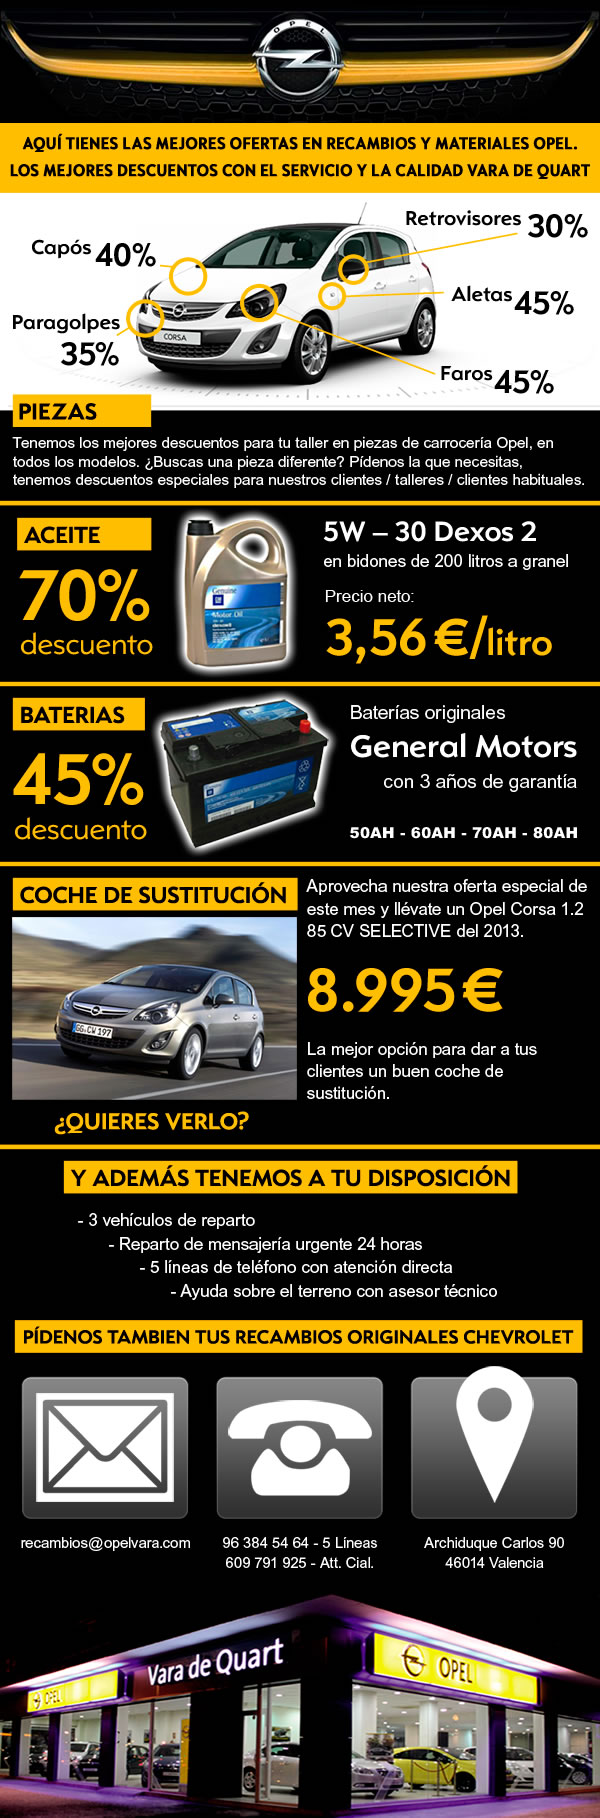 Campaña de email marketing para Opel Vara de Quart